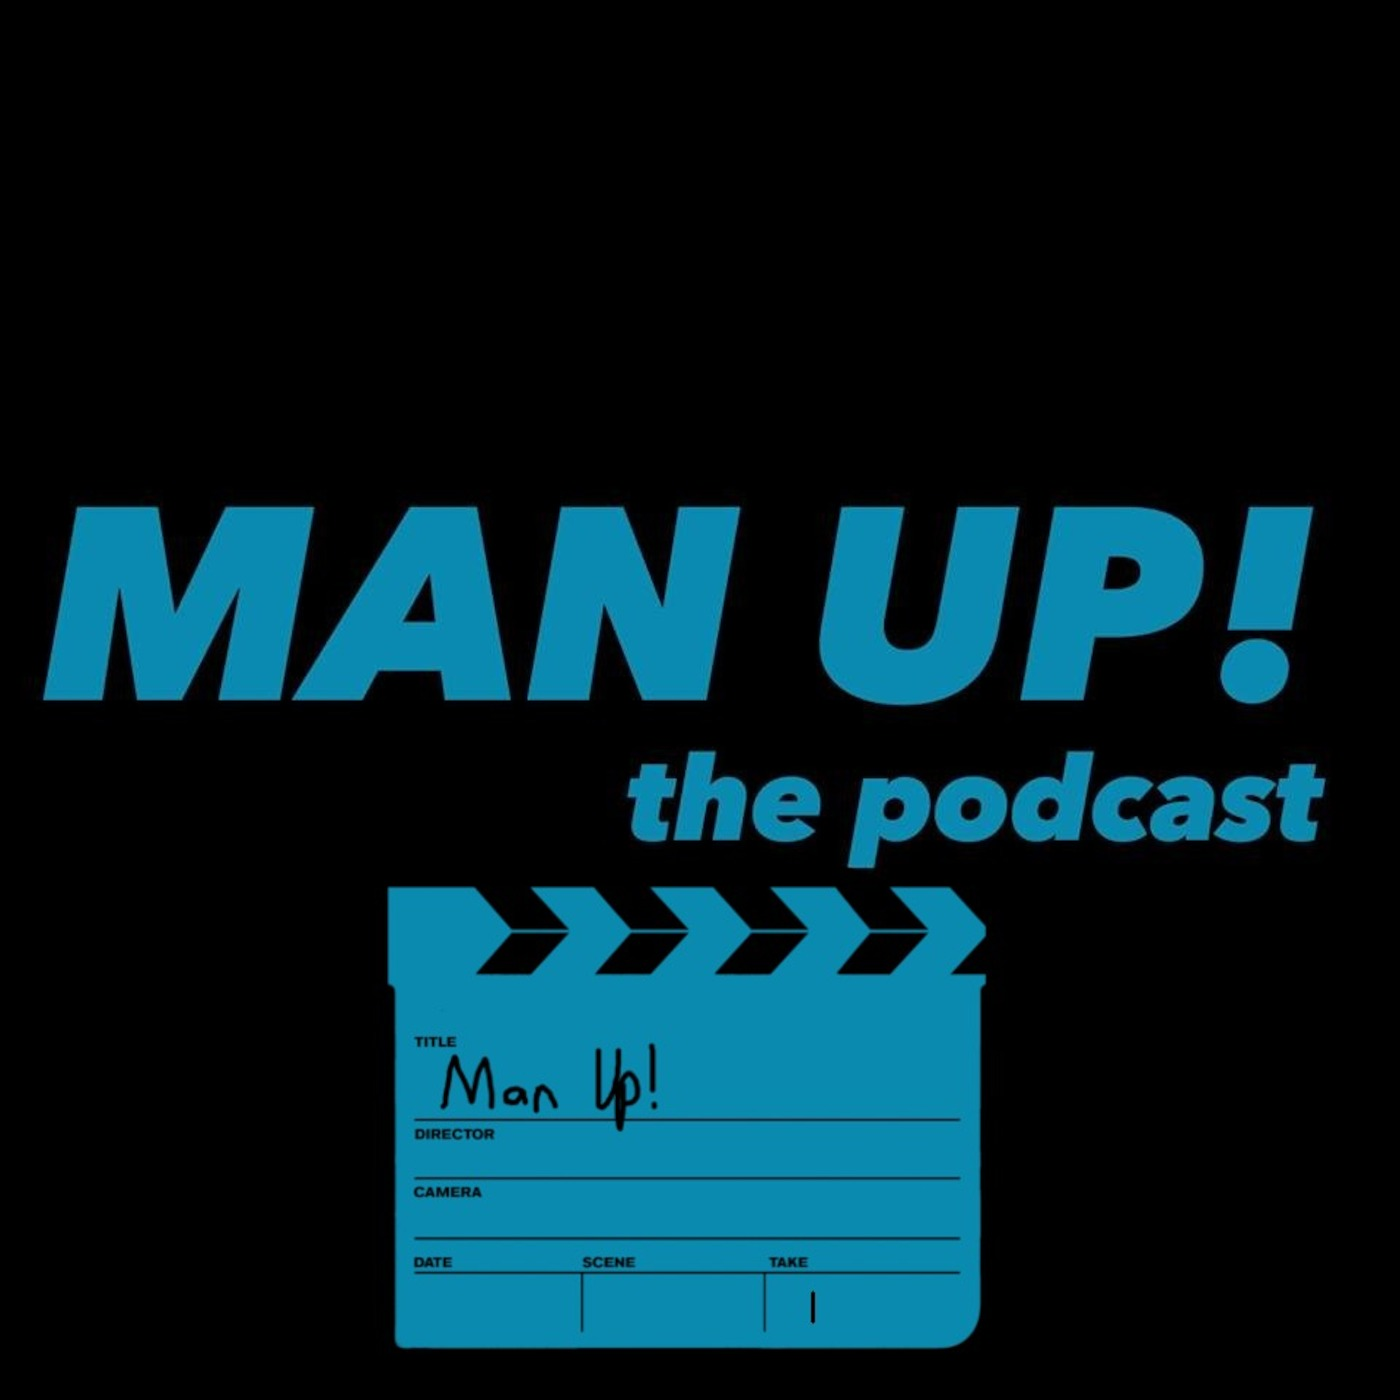 Man Up the Podcast Episode 12- Manly Movies